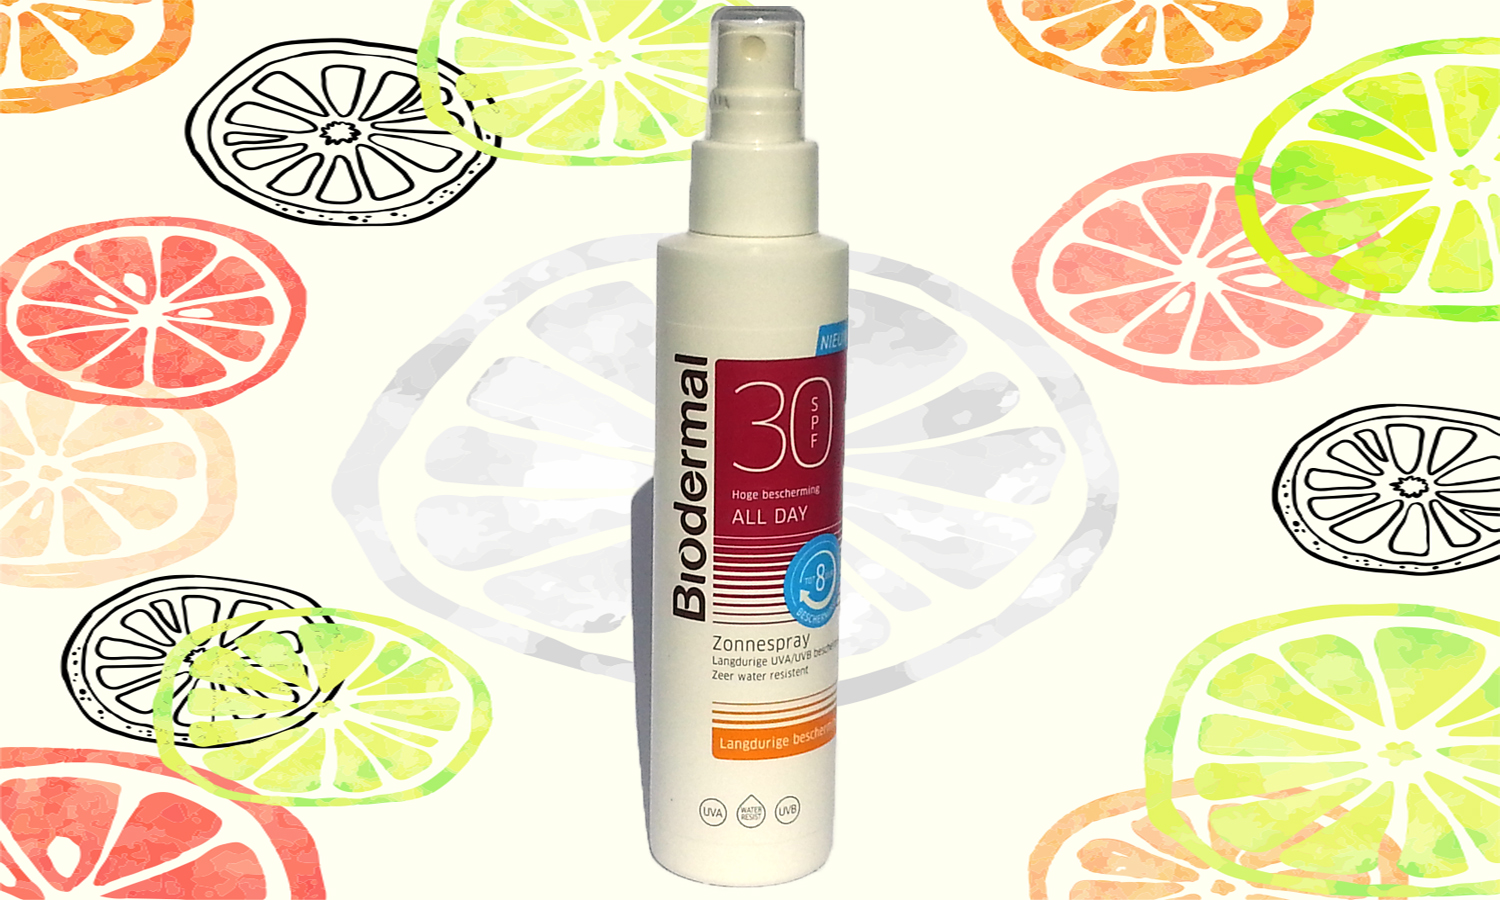 biodermal zonnespray all day spf 30